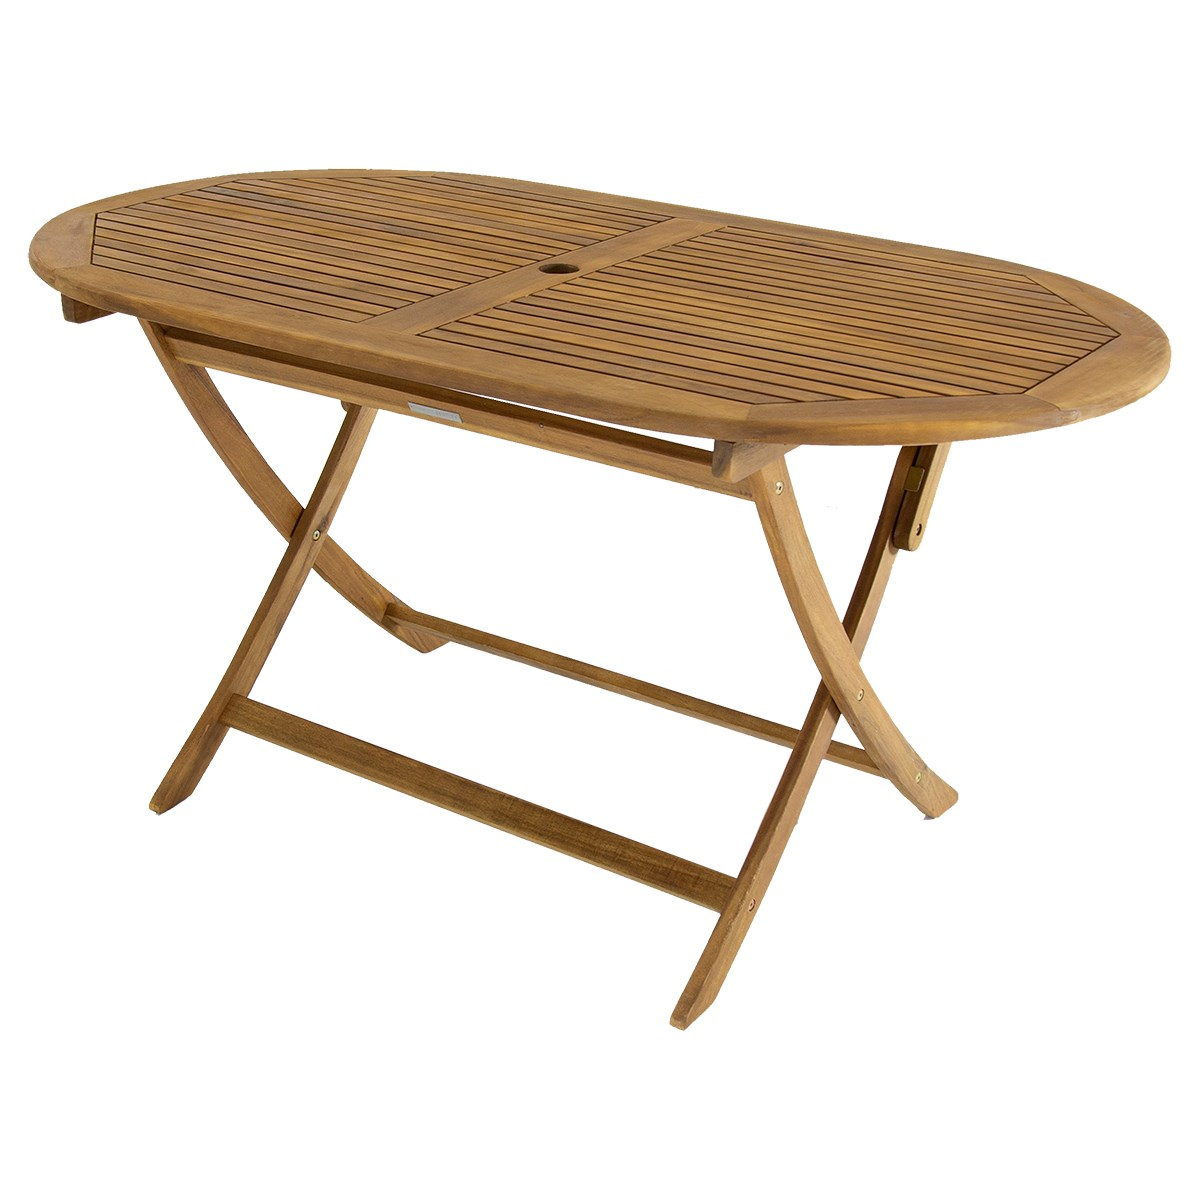 Oval Wooden Garden Table with Parasol Hole